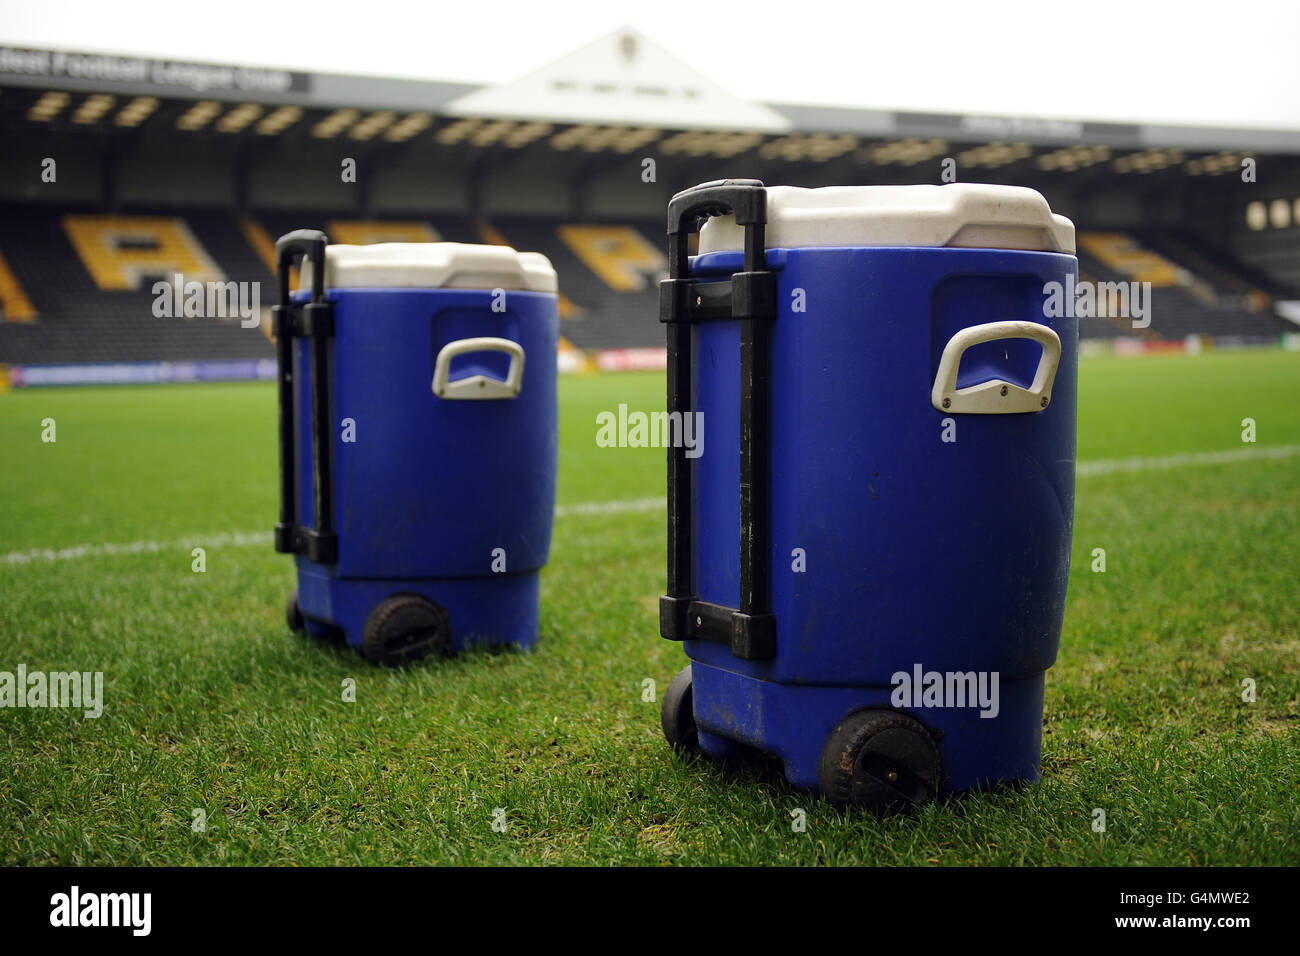 Soccer - npower Football League One - Notts County v Wycombe Wanderers - Meadow Lane Stock Photo